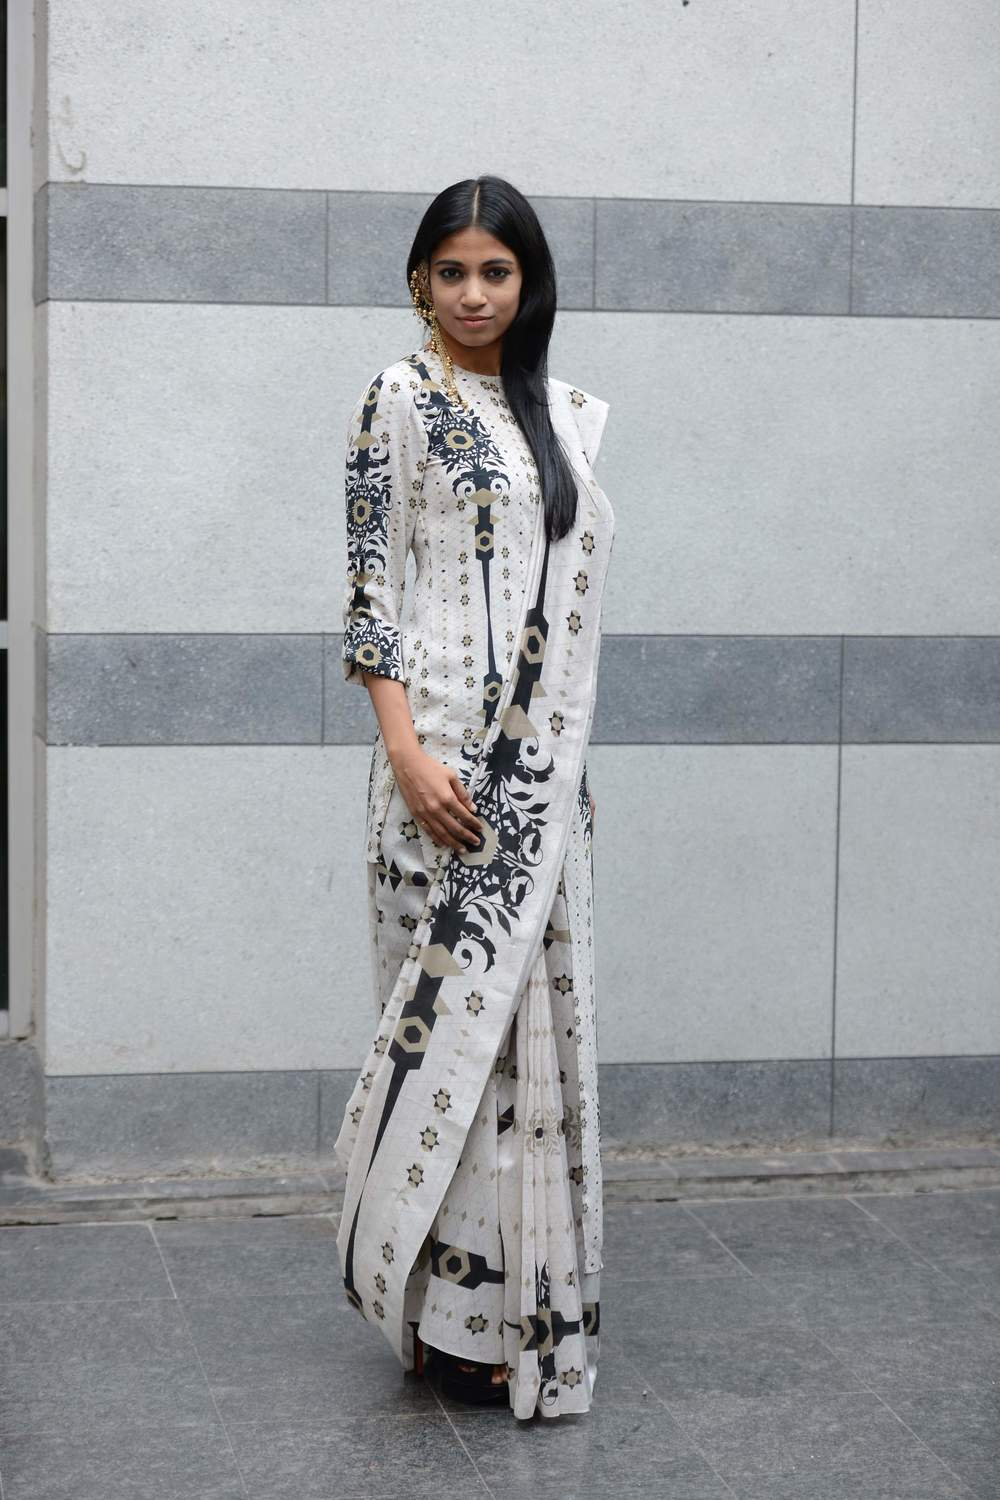 Bhagyashree Raut dressed in Lady Sahara by Payal Singhal